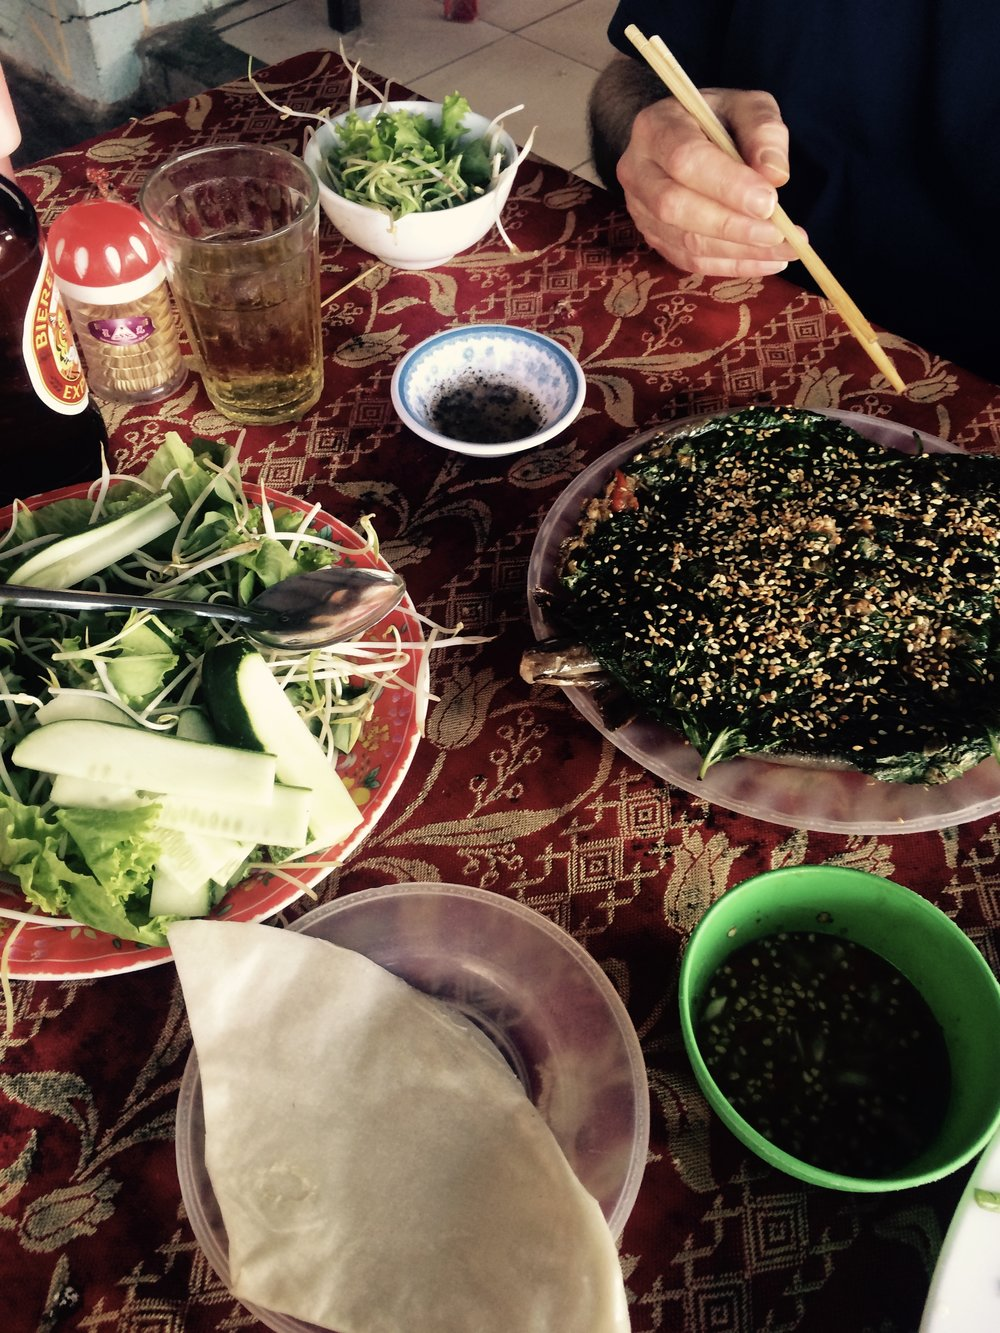 Vietnamese street food Friday - Existential eating will be making all our favourite street snacks from Vietnam veggie styles!